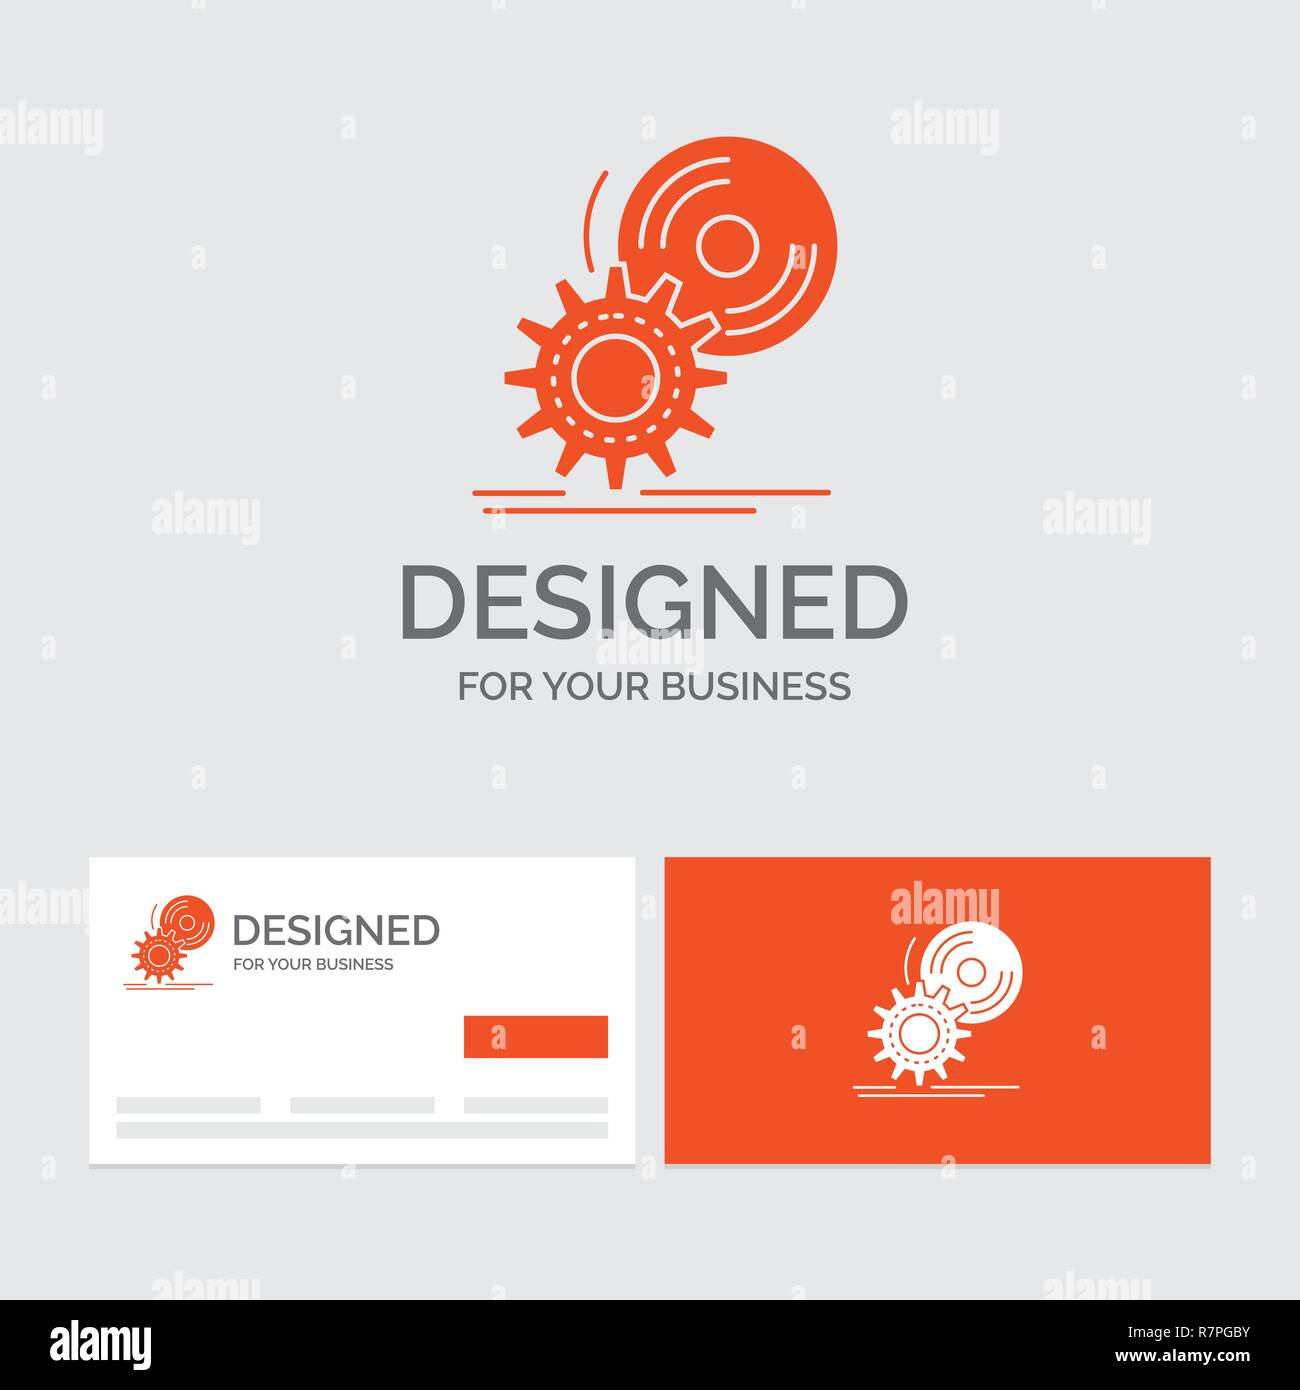 business logo template for cd disc install software dvd orange